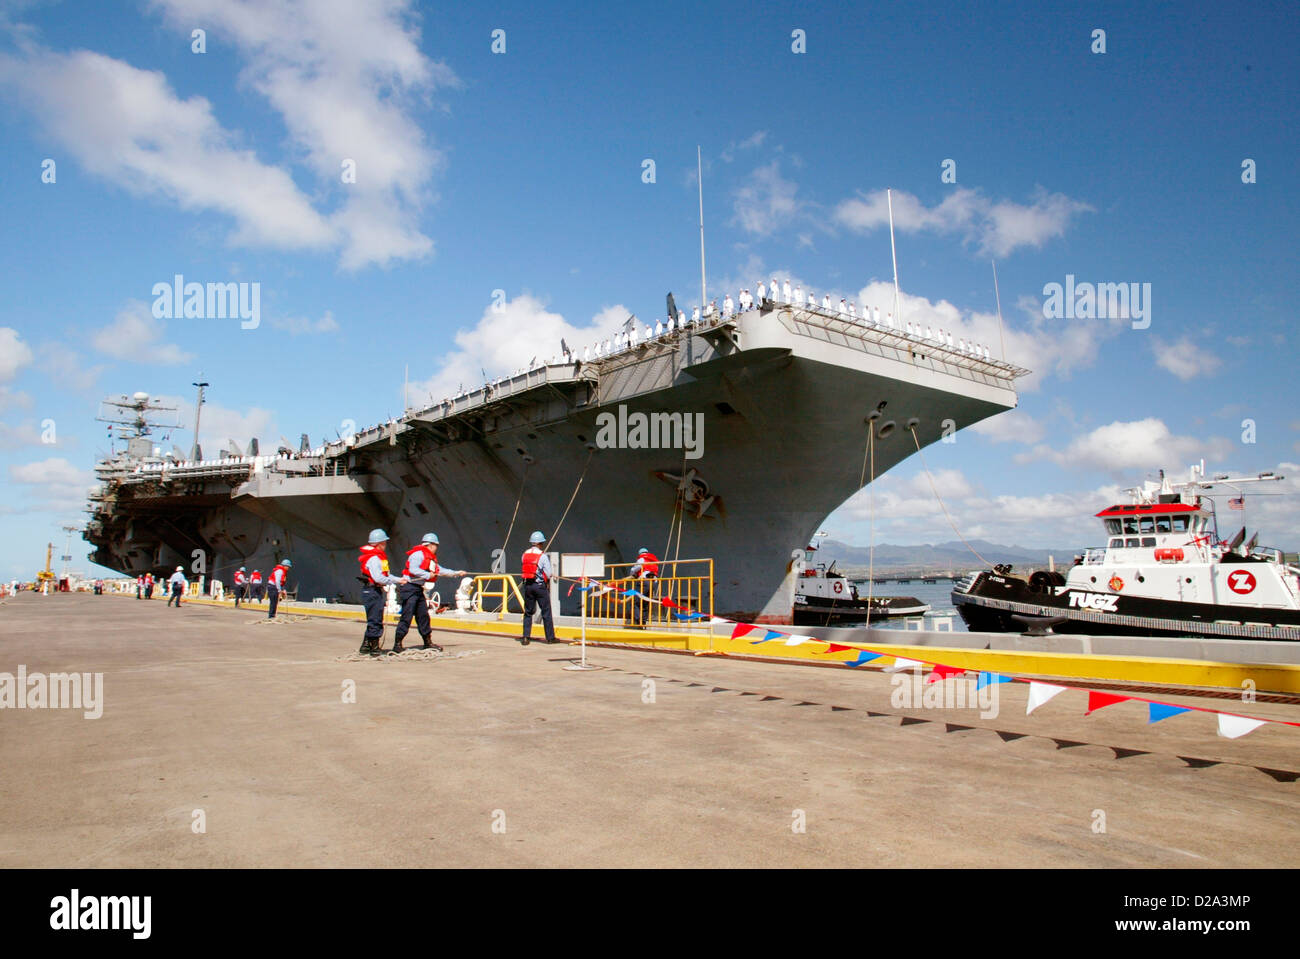 Hawaii, Honolulu. Aircraft Carrier Uss Abraham Lincoln Pulling Into Pearl Harbor Following Deployment In Iraq War. - Stock Image